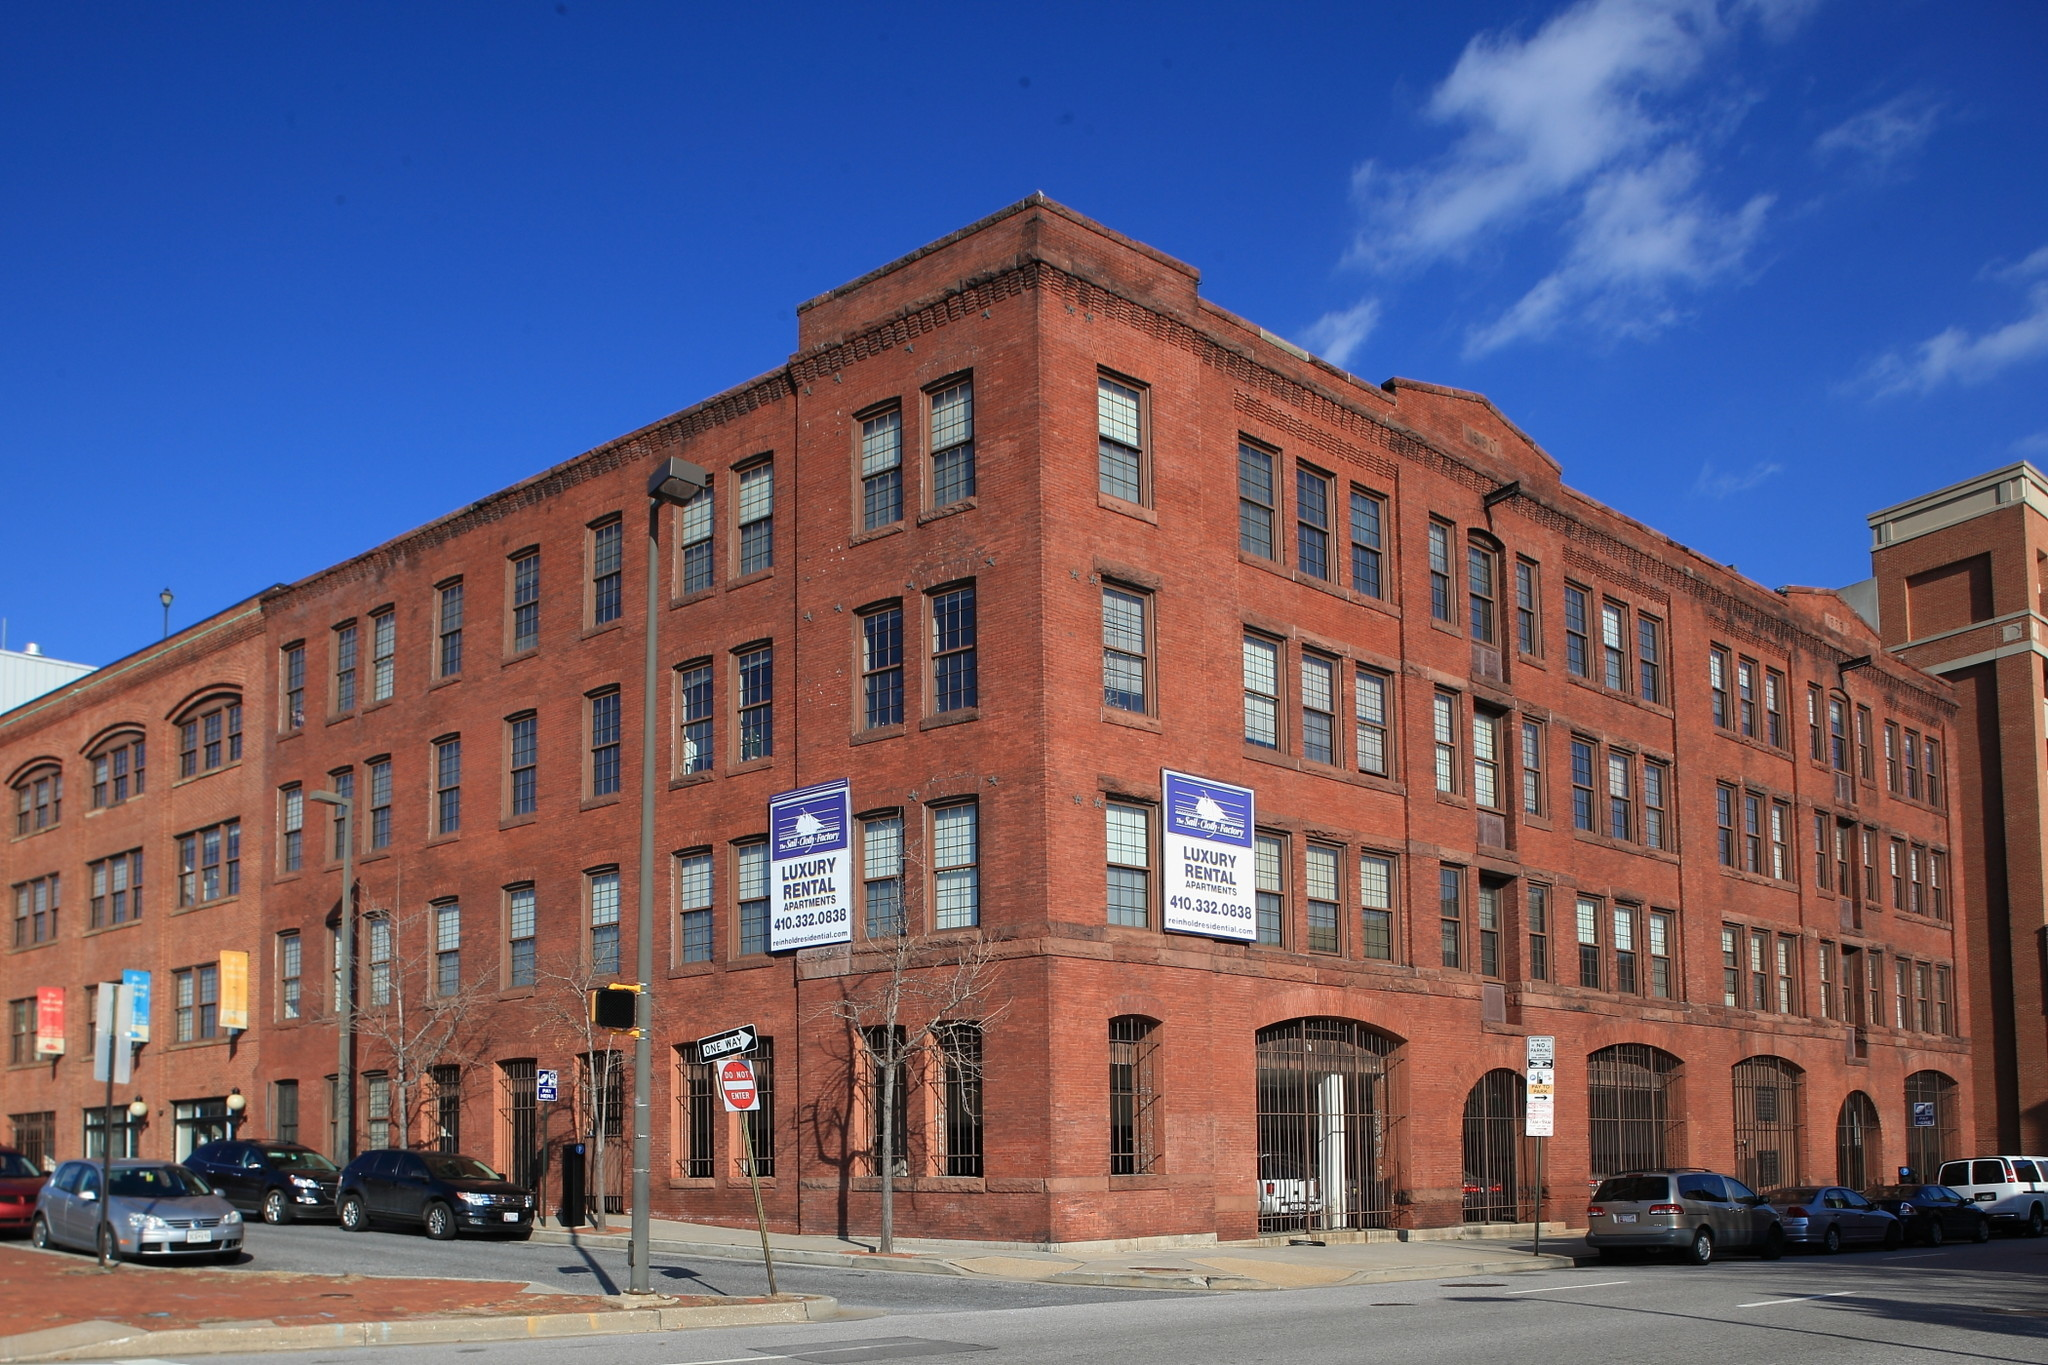 sail cloth factory apartments sell for 12 9 million baltimore sun